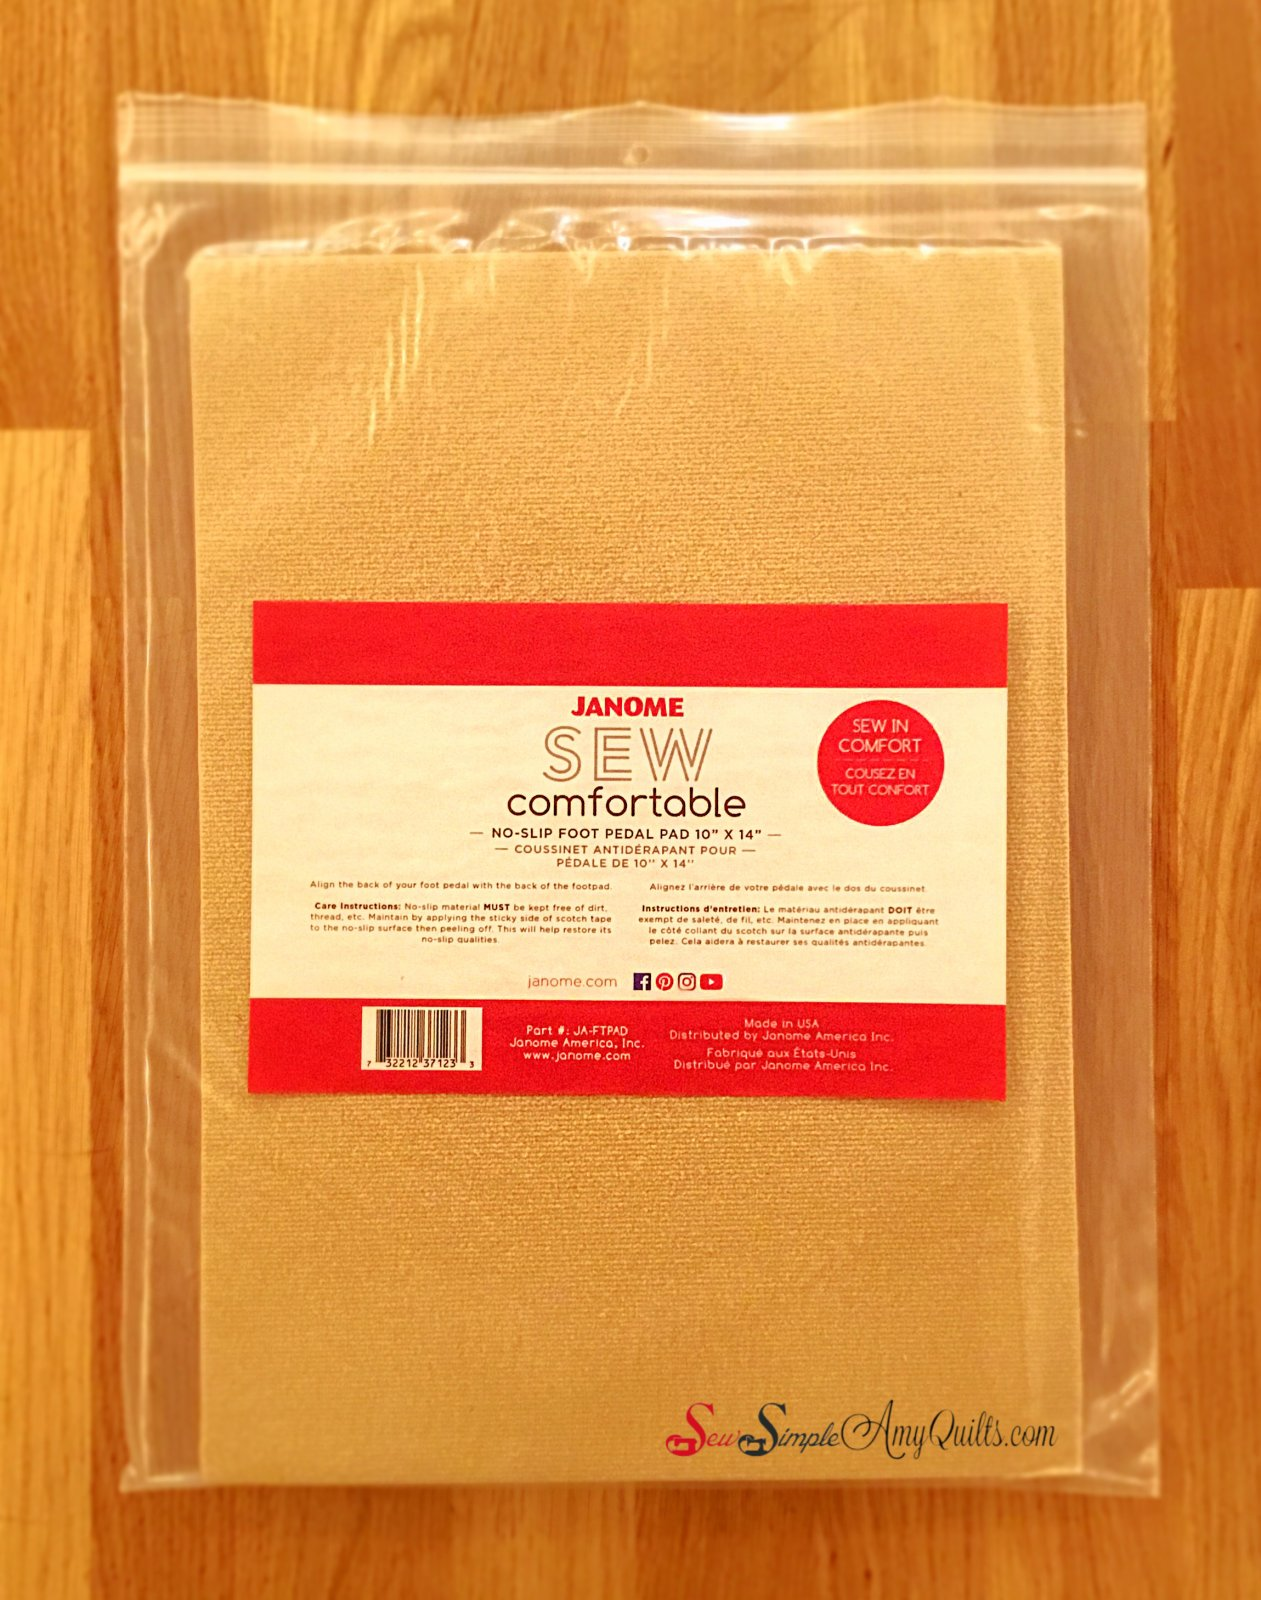 Janome Sew Comfortable No-Slip Foot Pedal Pad 10in x14in